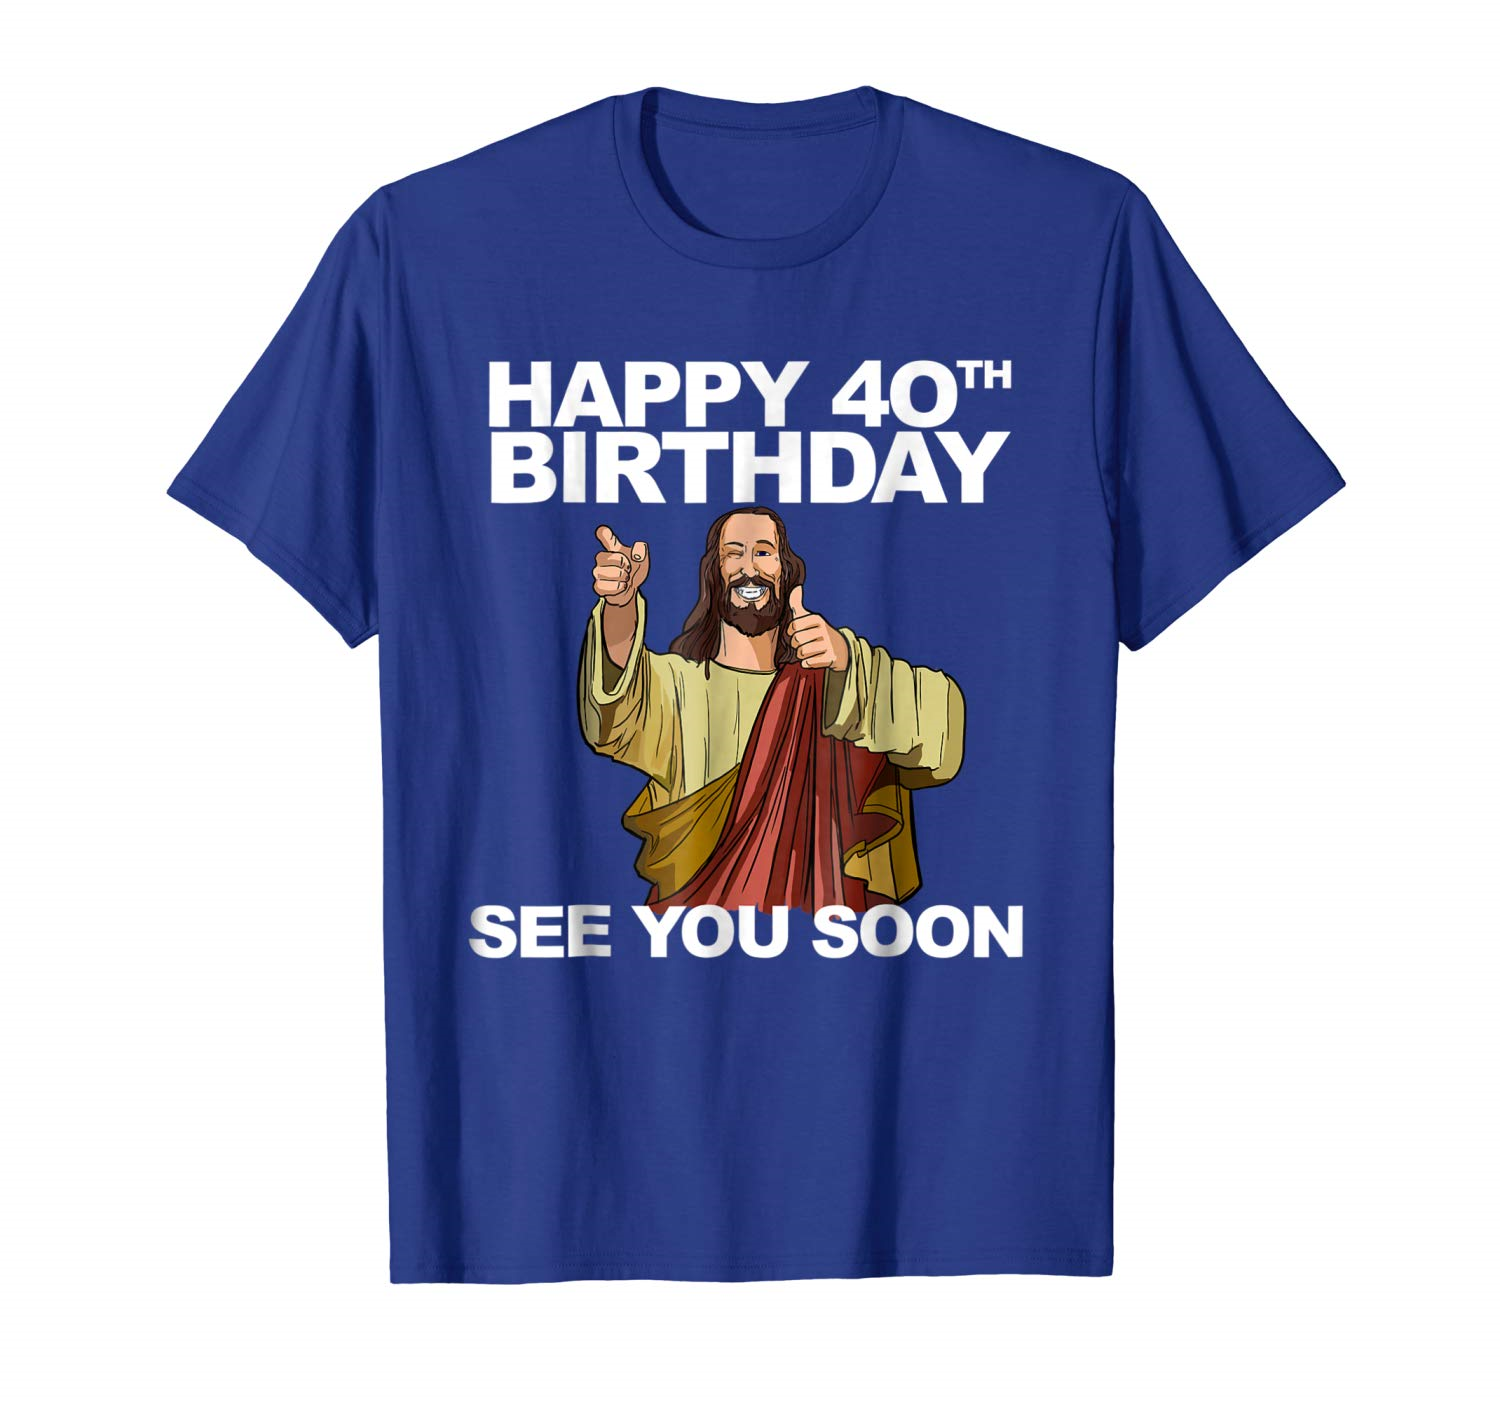 Happy 40th Birthday See You Soon shirt funny